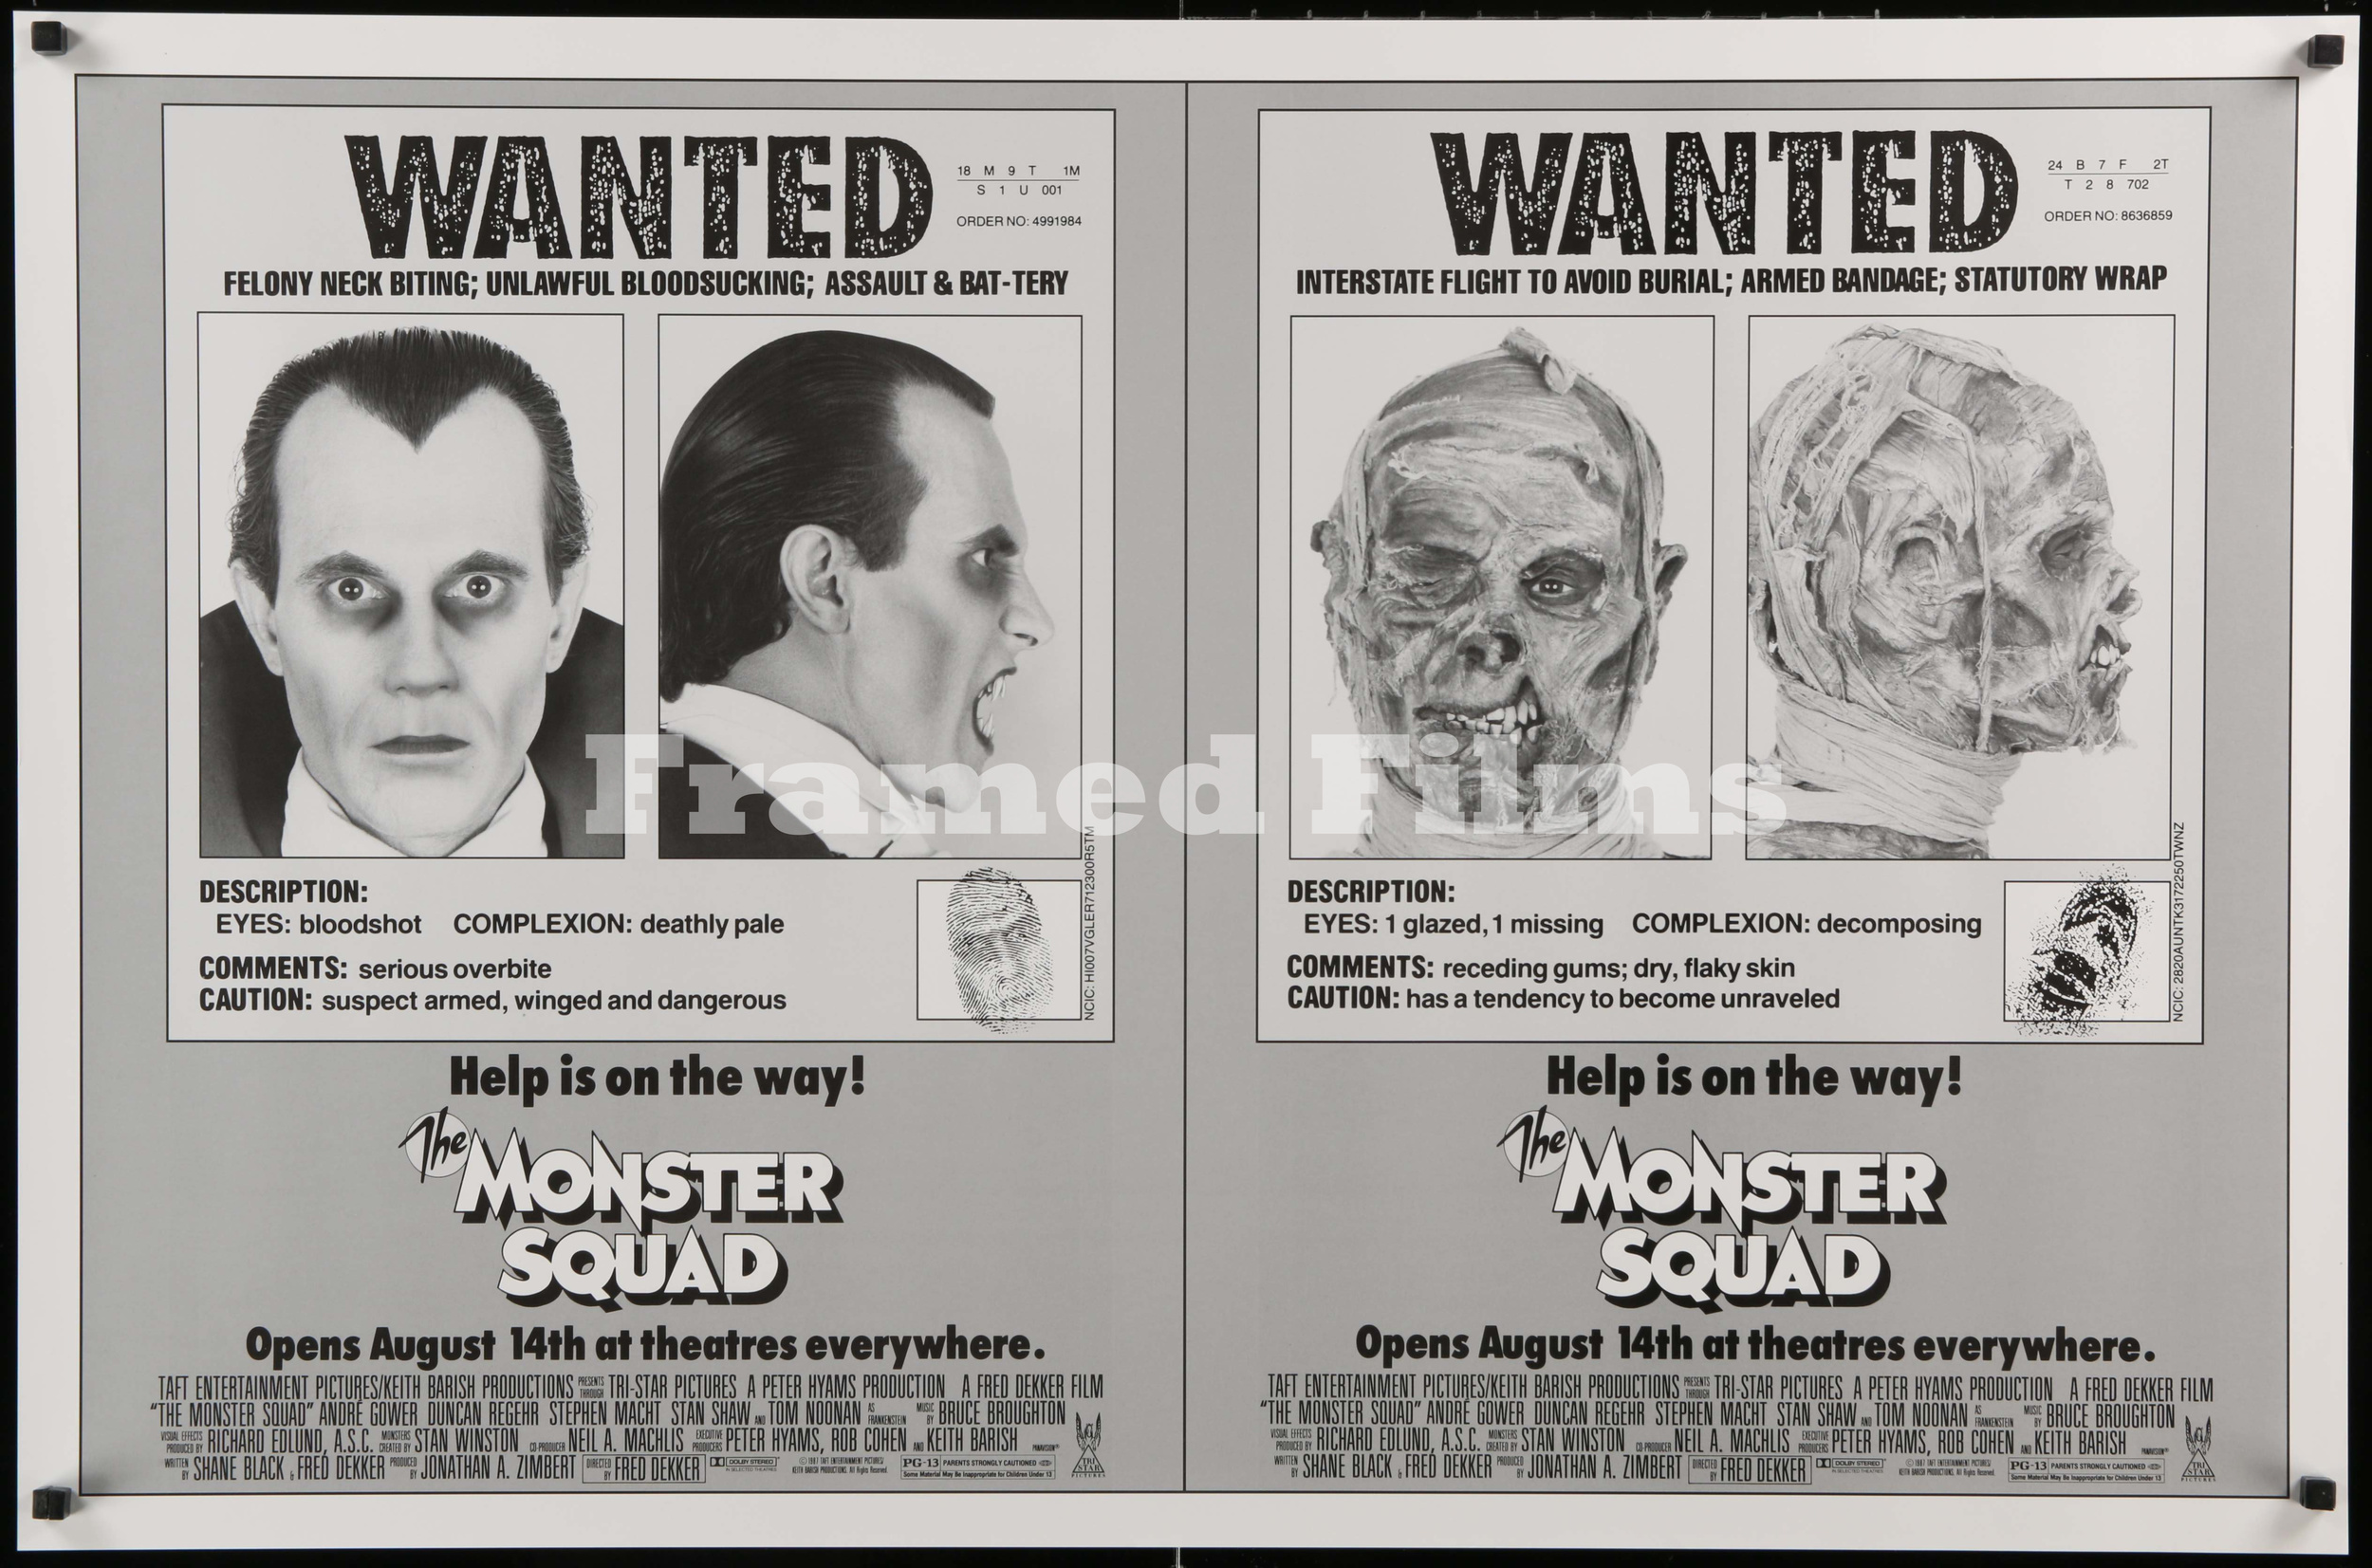 monster_squad_advance_SD03831_L.jpg